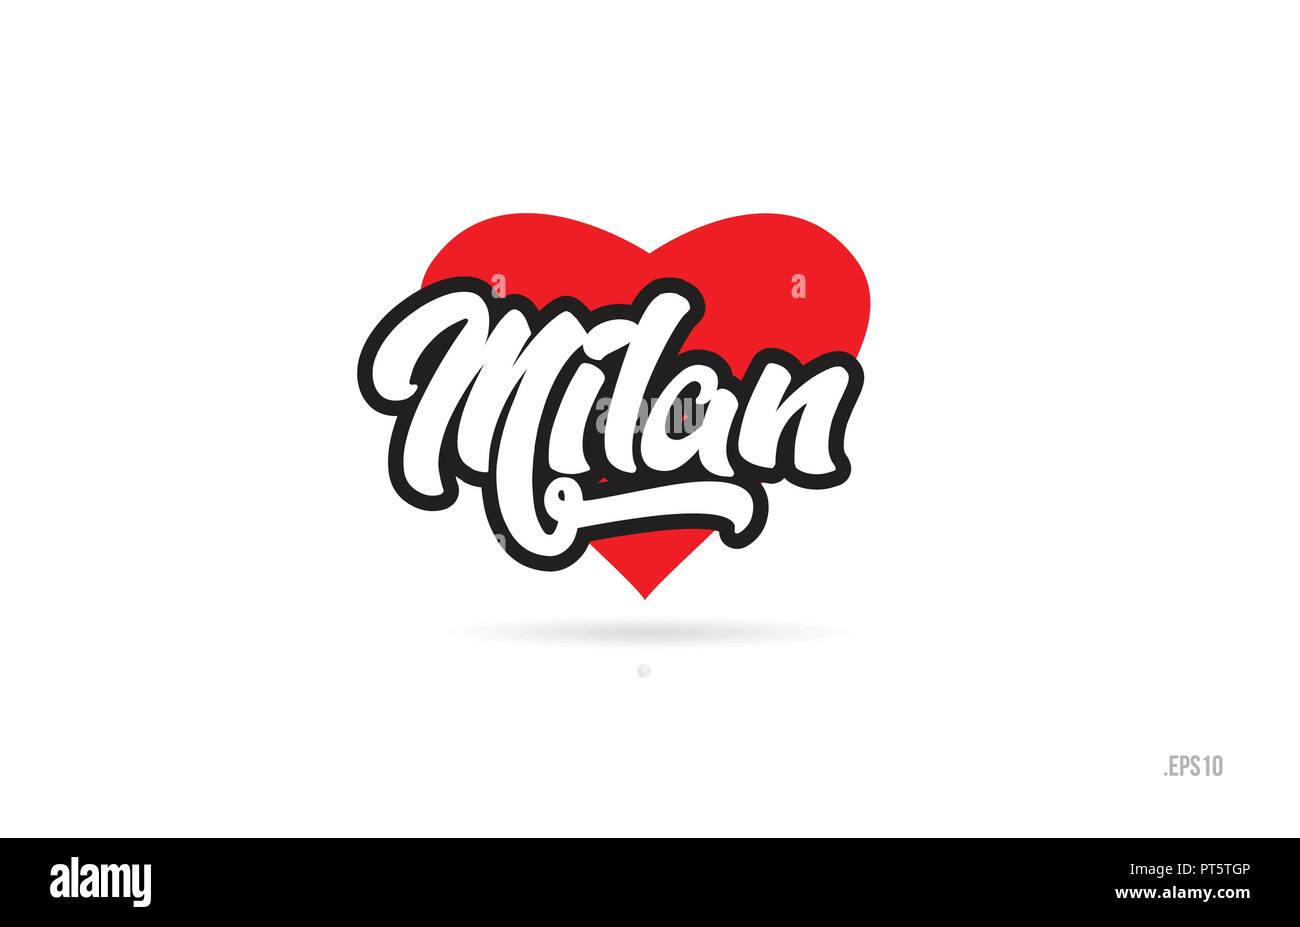 milan city text design with red heart typographic icon design suitable for touristic promotion - Stock Vector